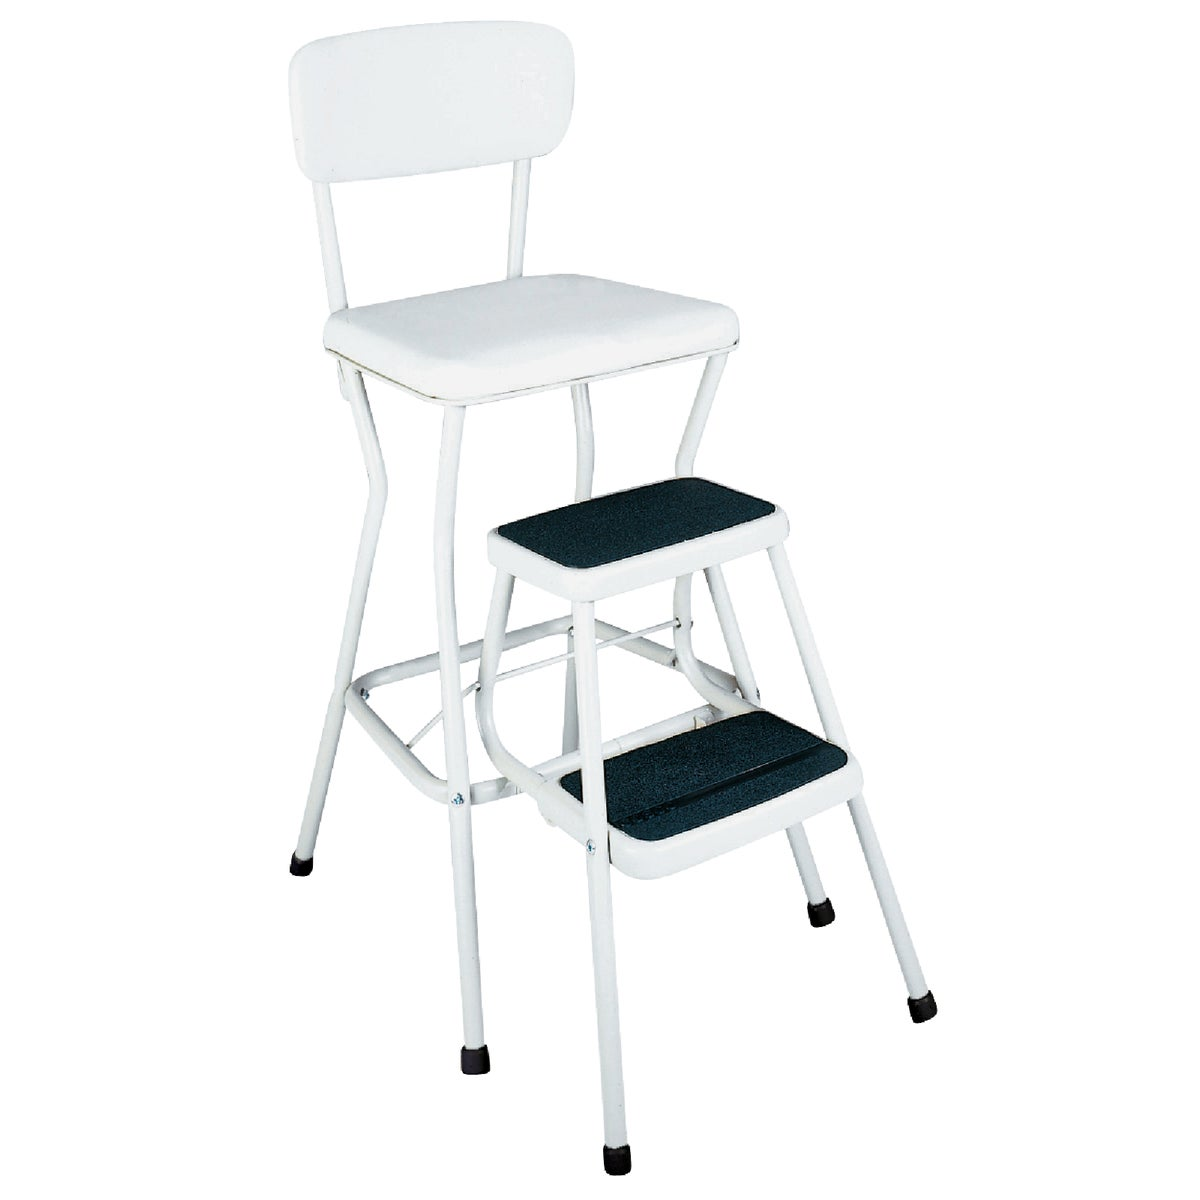 CHAIR/STEP STOOL - 11-118-WHT by Cosco    J Myalls